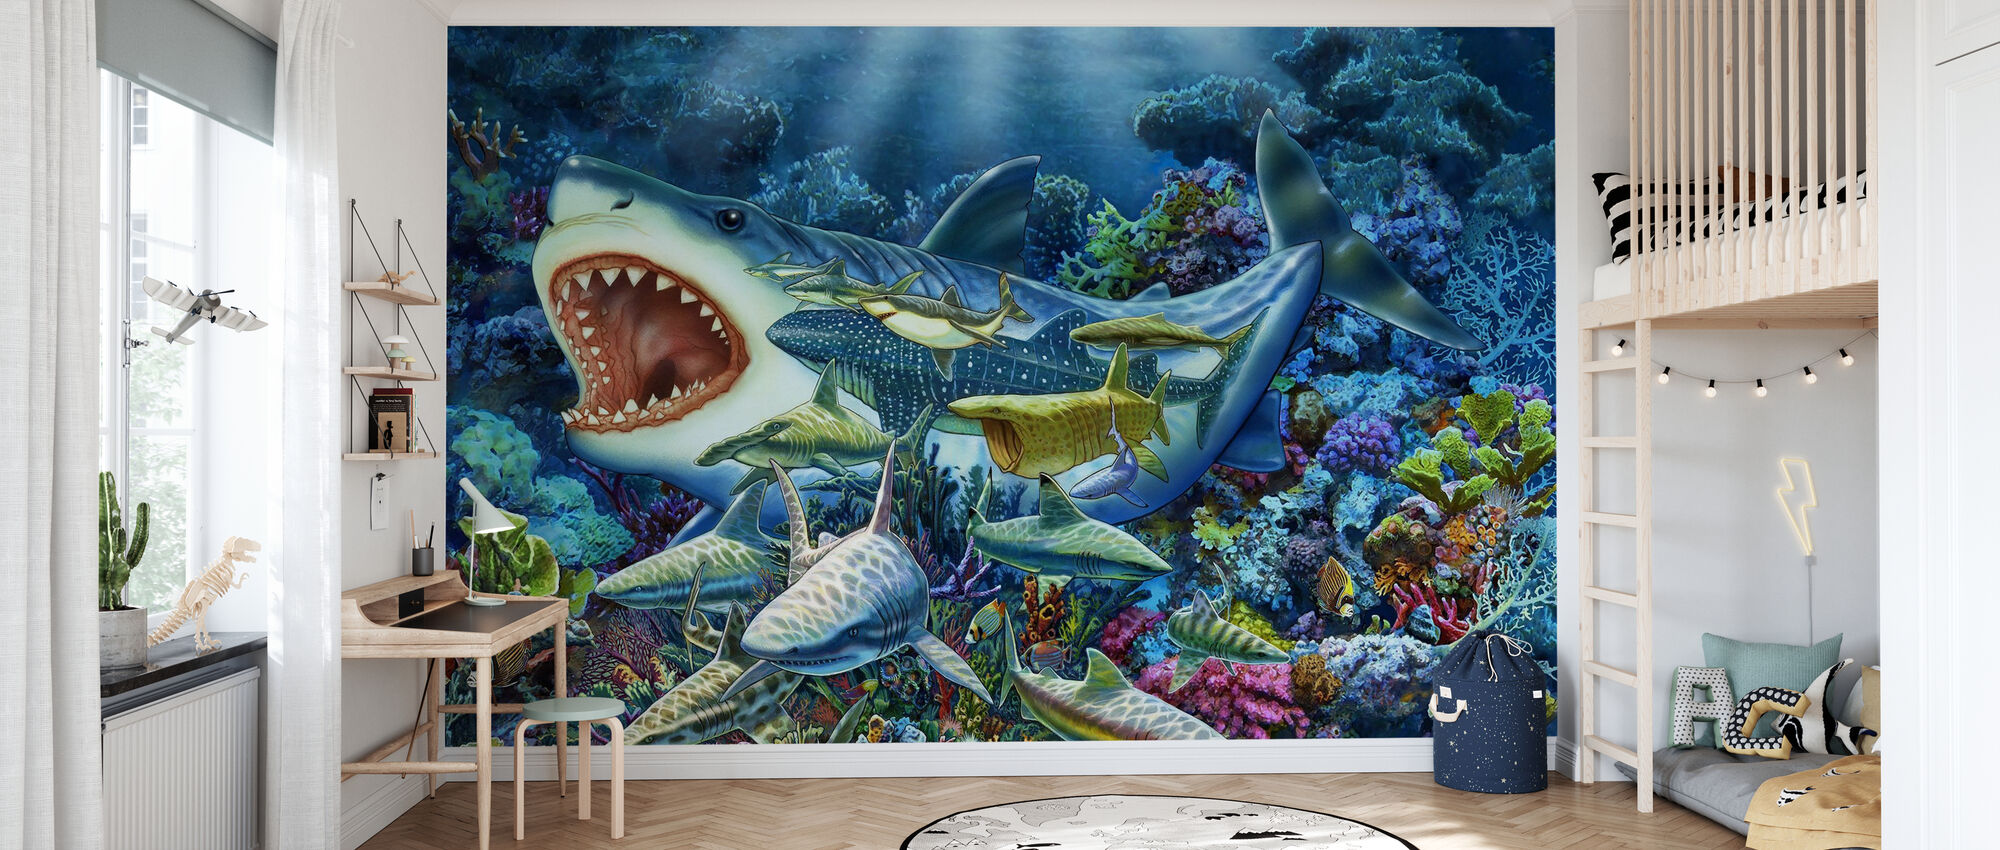 Shark Adventure - Wallpaper - Kids Room